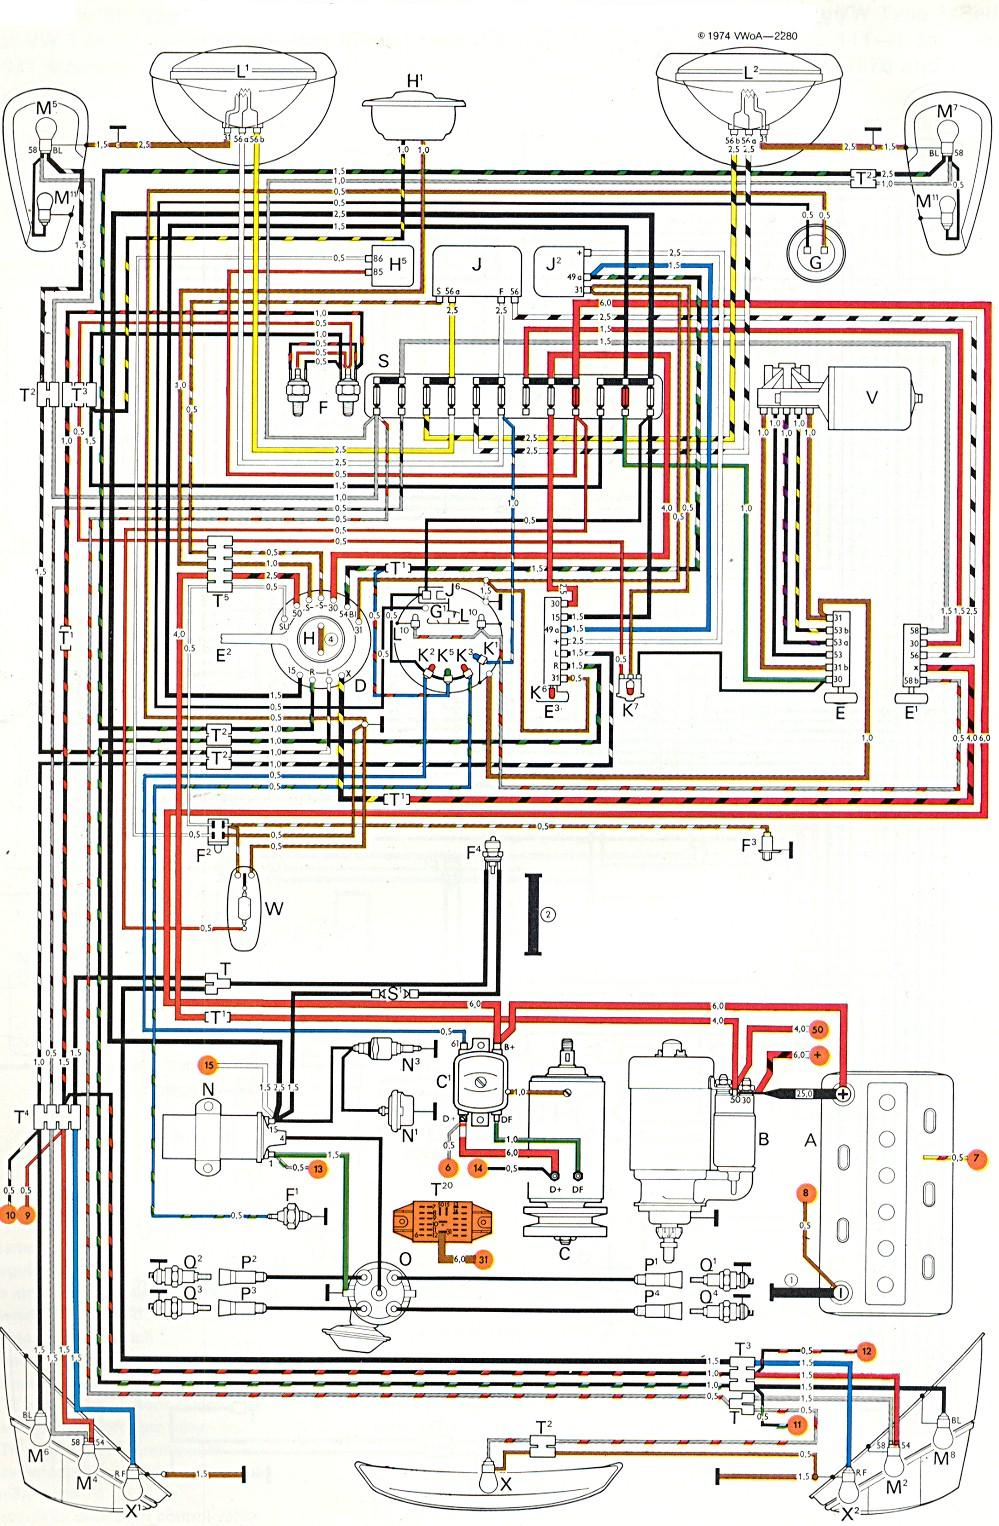 1971 vw engine diagram trusted schematics wiring diagrams u2022 rh bestbooksrichtreasures com